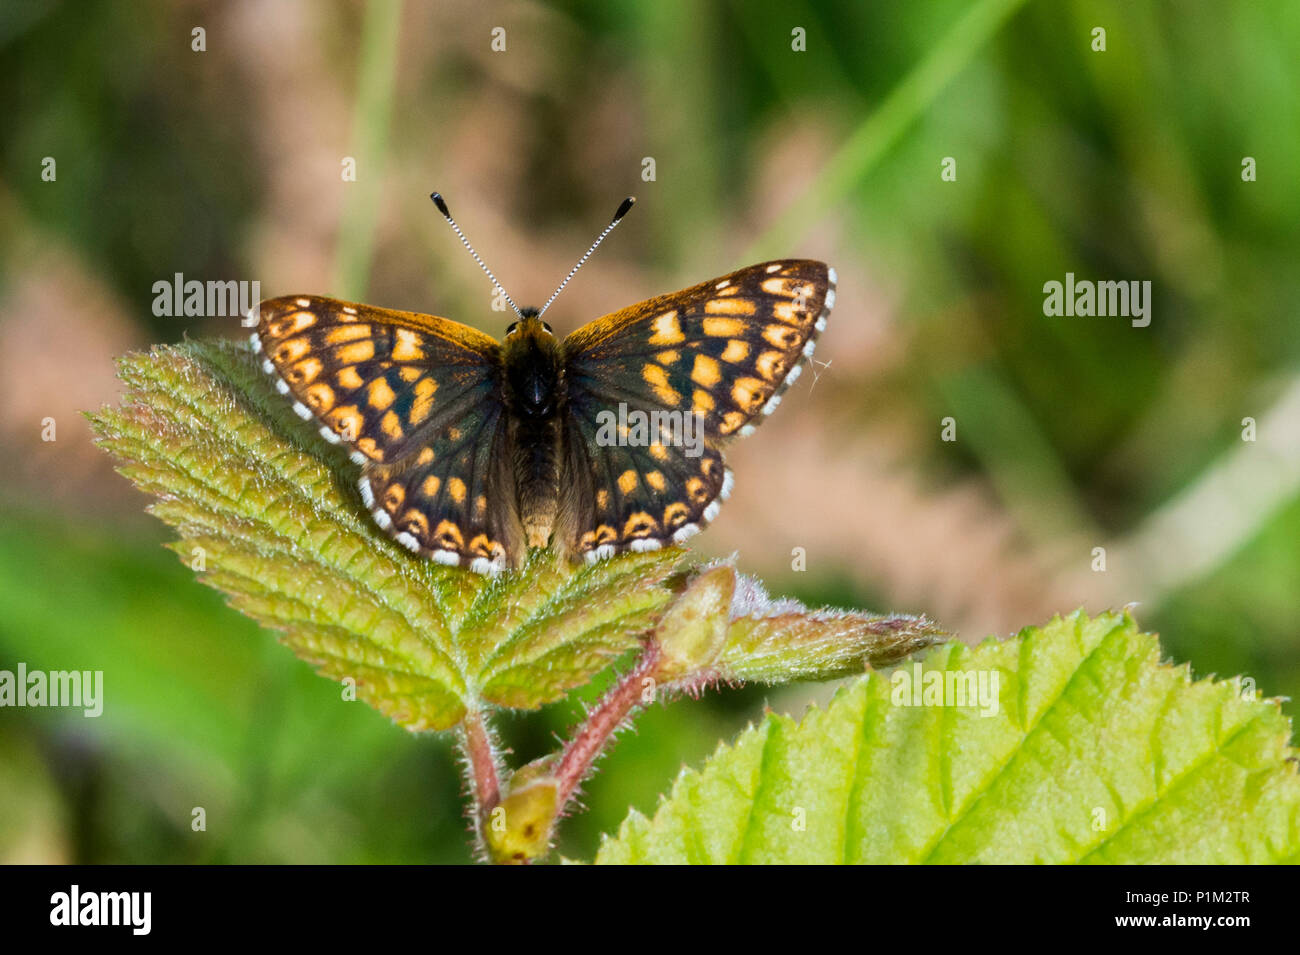 Duke of Burgundy butterfly, Whitbarrow, Lake District, Cumbria, England - Stock Image